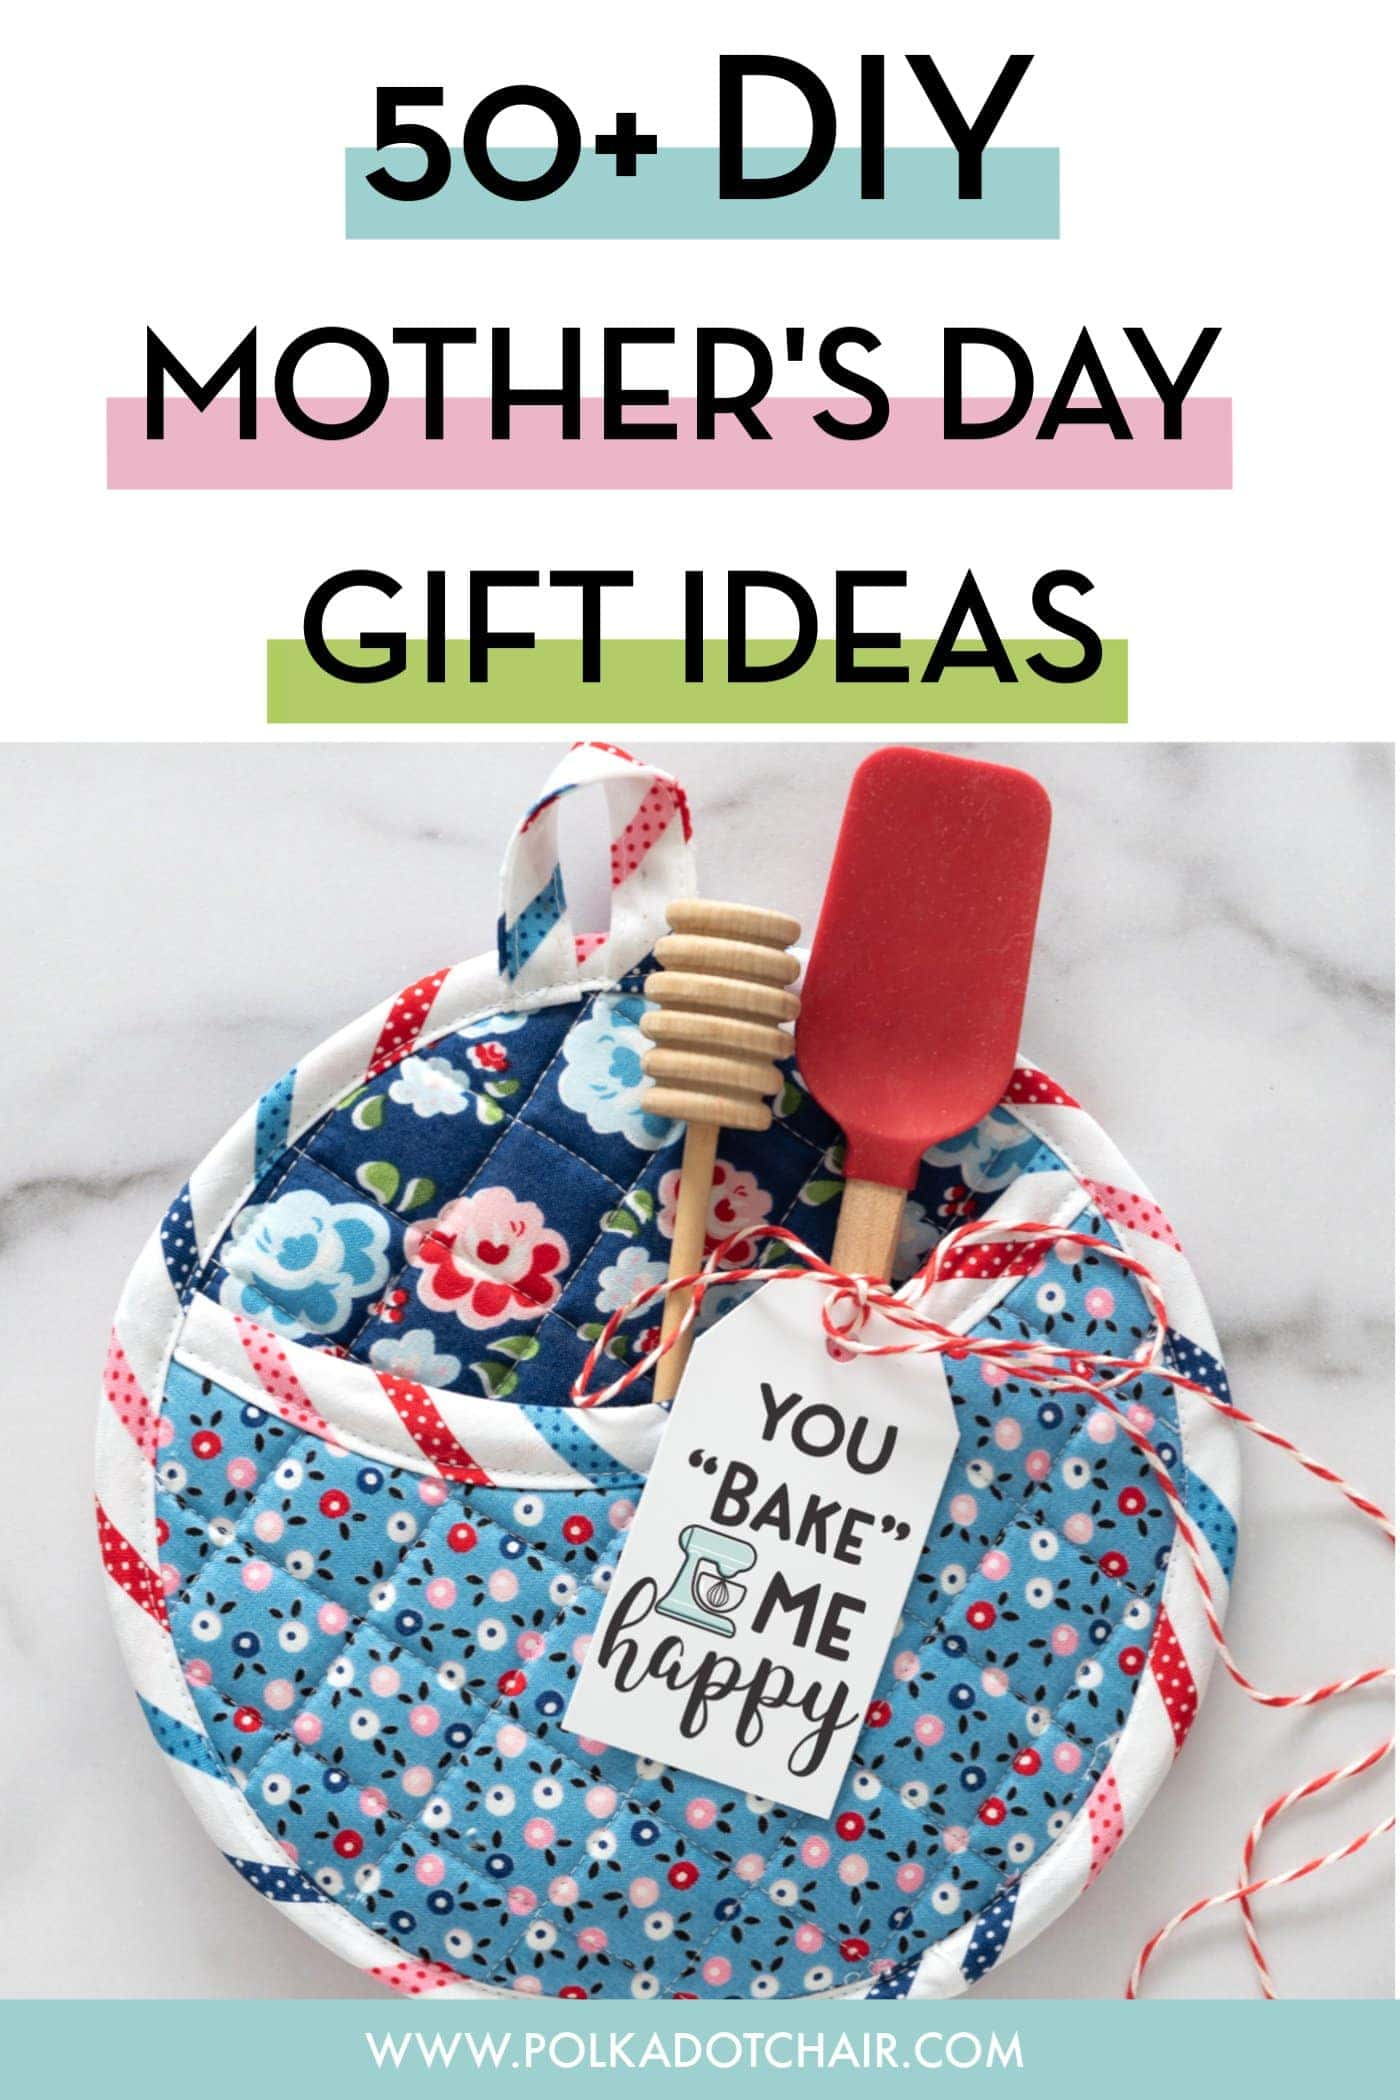 Awesome Diy Mother's Day Gifts 50 Diy Mother S Day Gift Ideas Projects The Polka Dot Chair